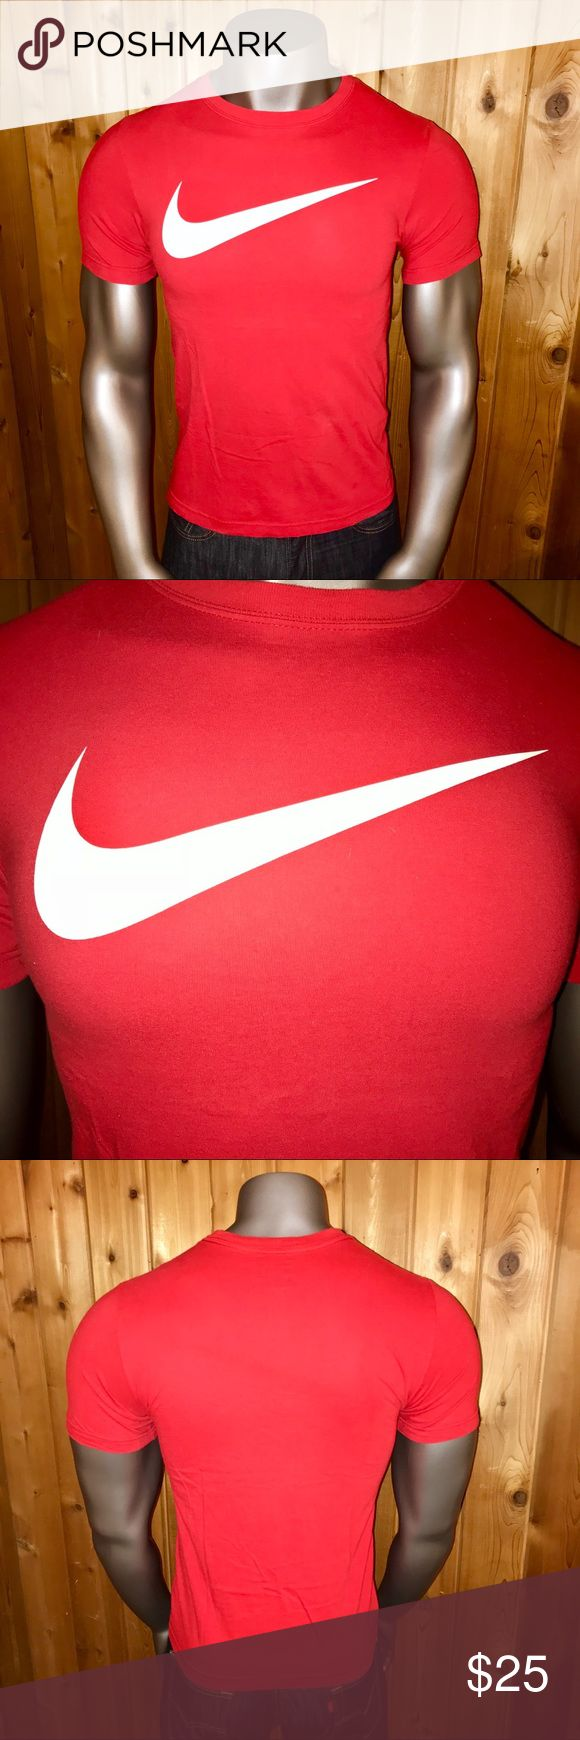 Nike Swoosh Logo Men's Small T-Shirt Size: U.S. Men's Small Color: Red/White Logo Official Nike Product Regular Fit 100% Cotton Made in Honduras  Excellent Condition! No rips, stains, tears, pulls, pills or fading  T-Shirt comes from a smoke and pet free  http://feedproxy.google.com/fashionshoes1